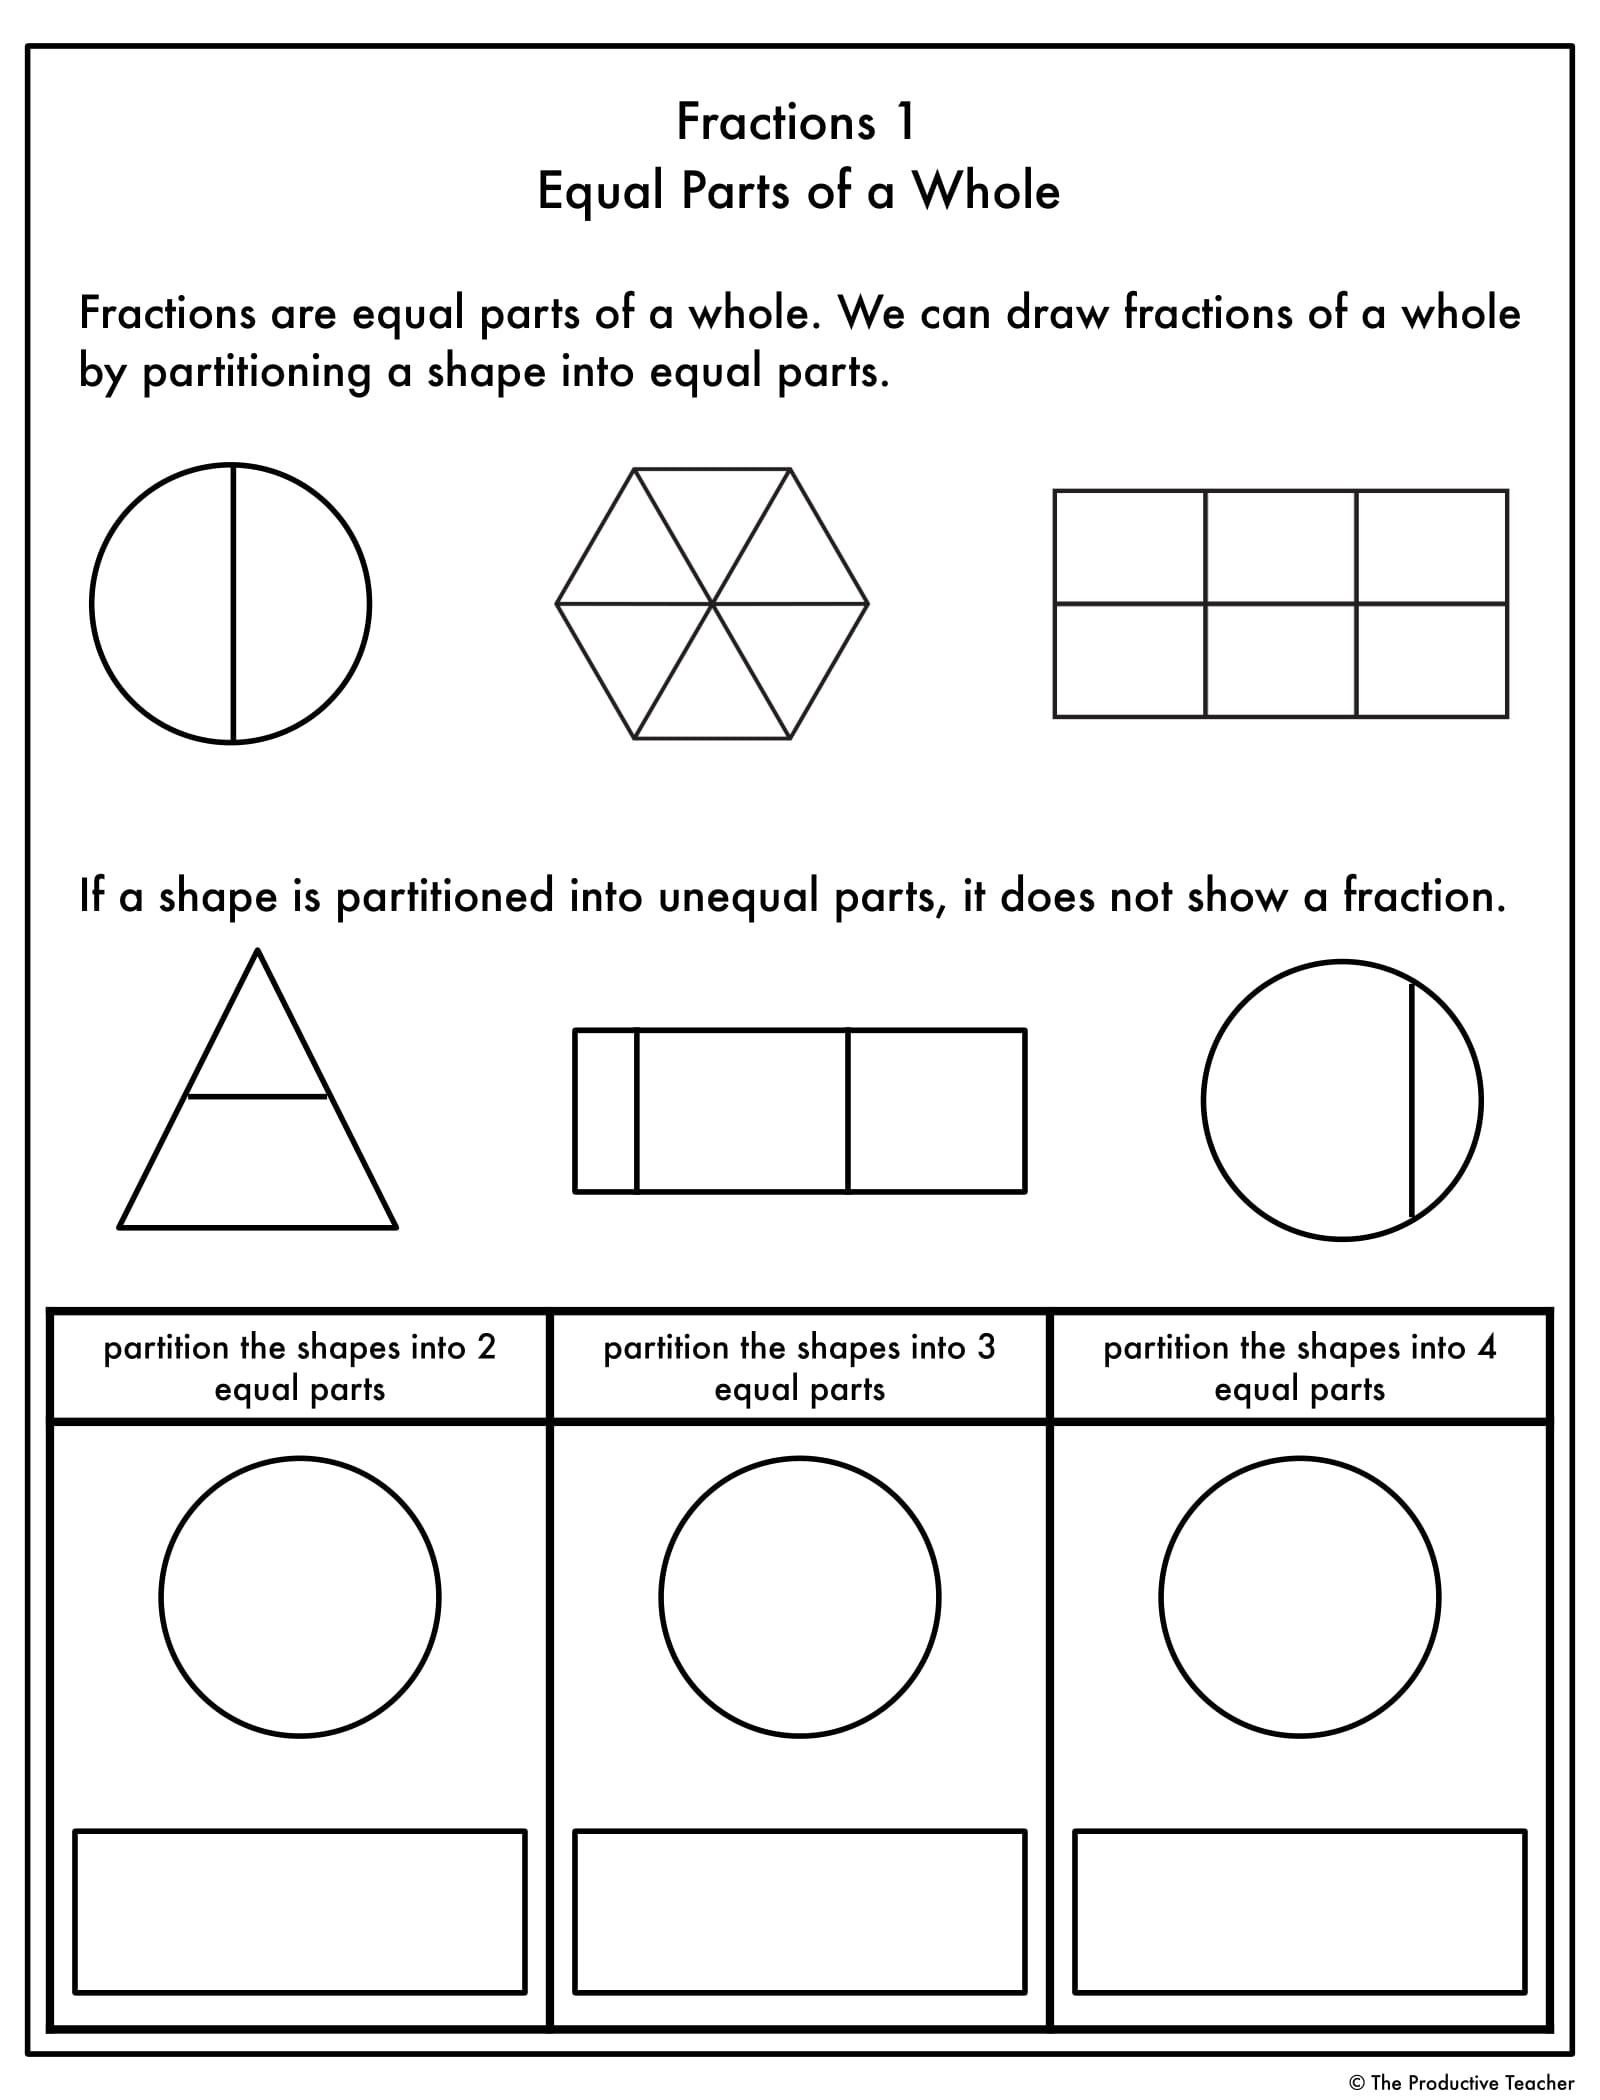 Regrouping Fractions Worksheet Fractions Progression Worksheets In 2020